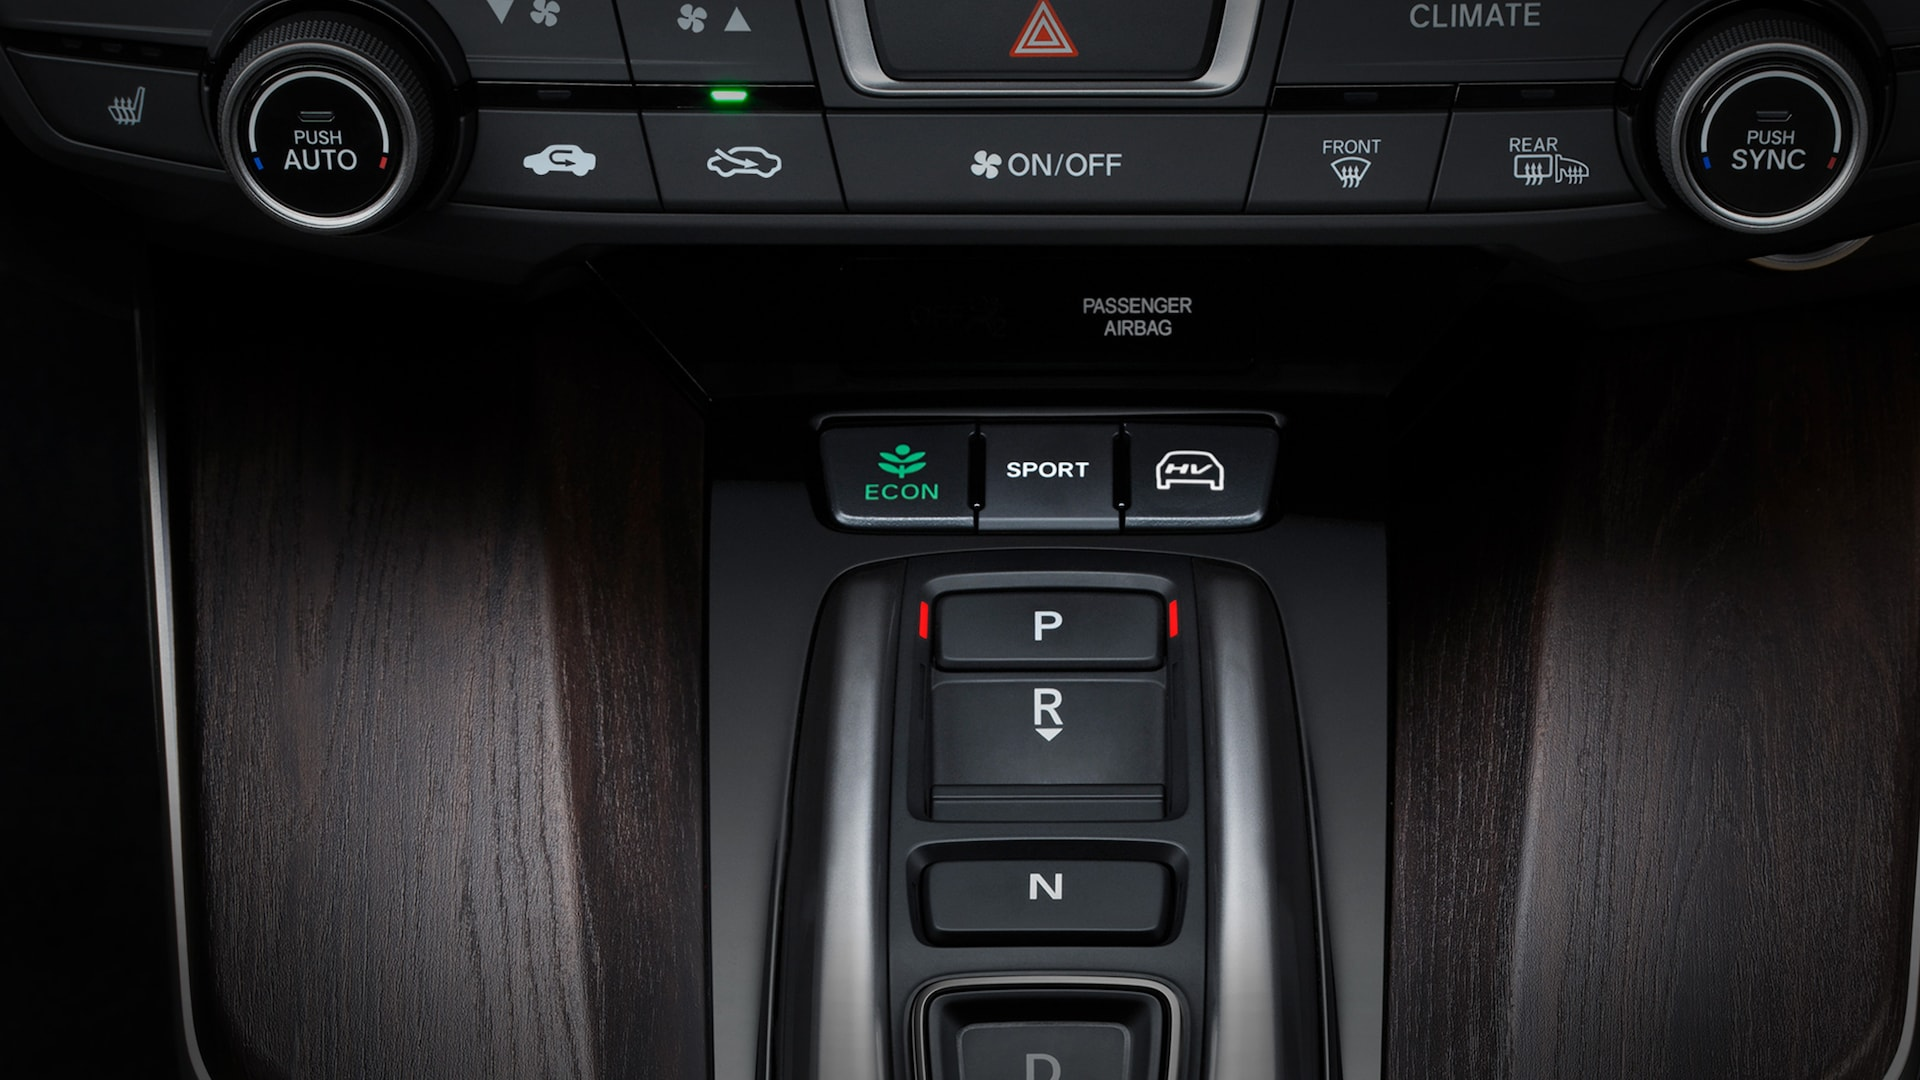 Detail of Shift-By-Wire in 2020 Clarity Plug-In Hybrid.